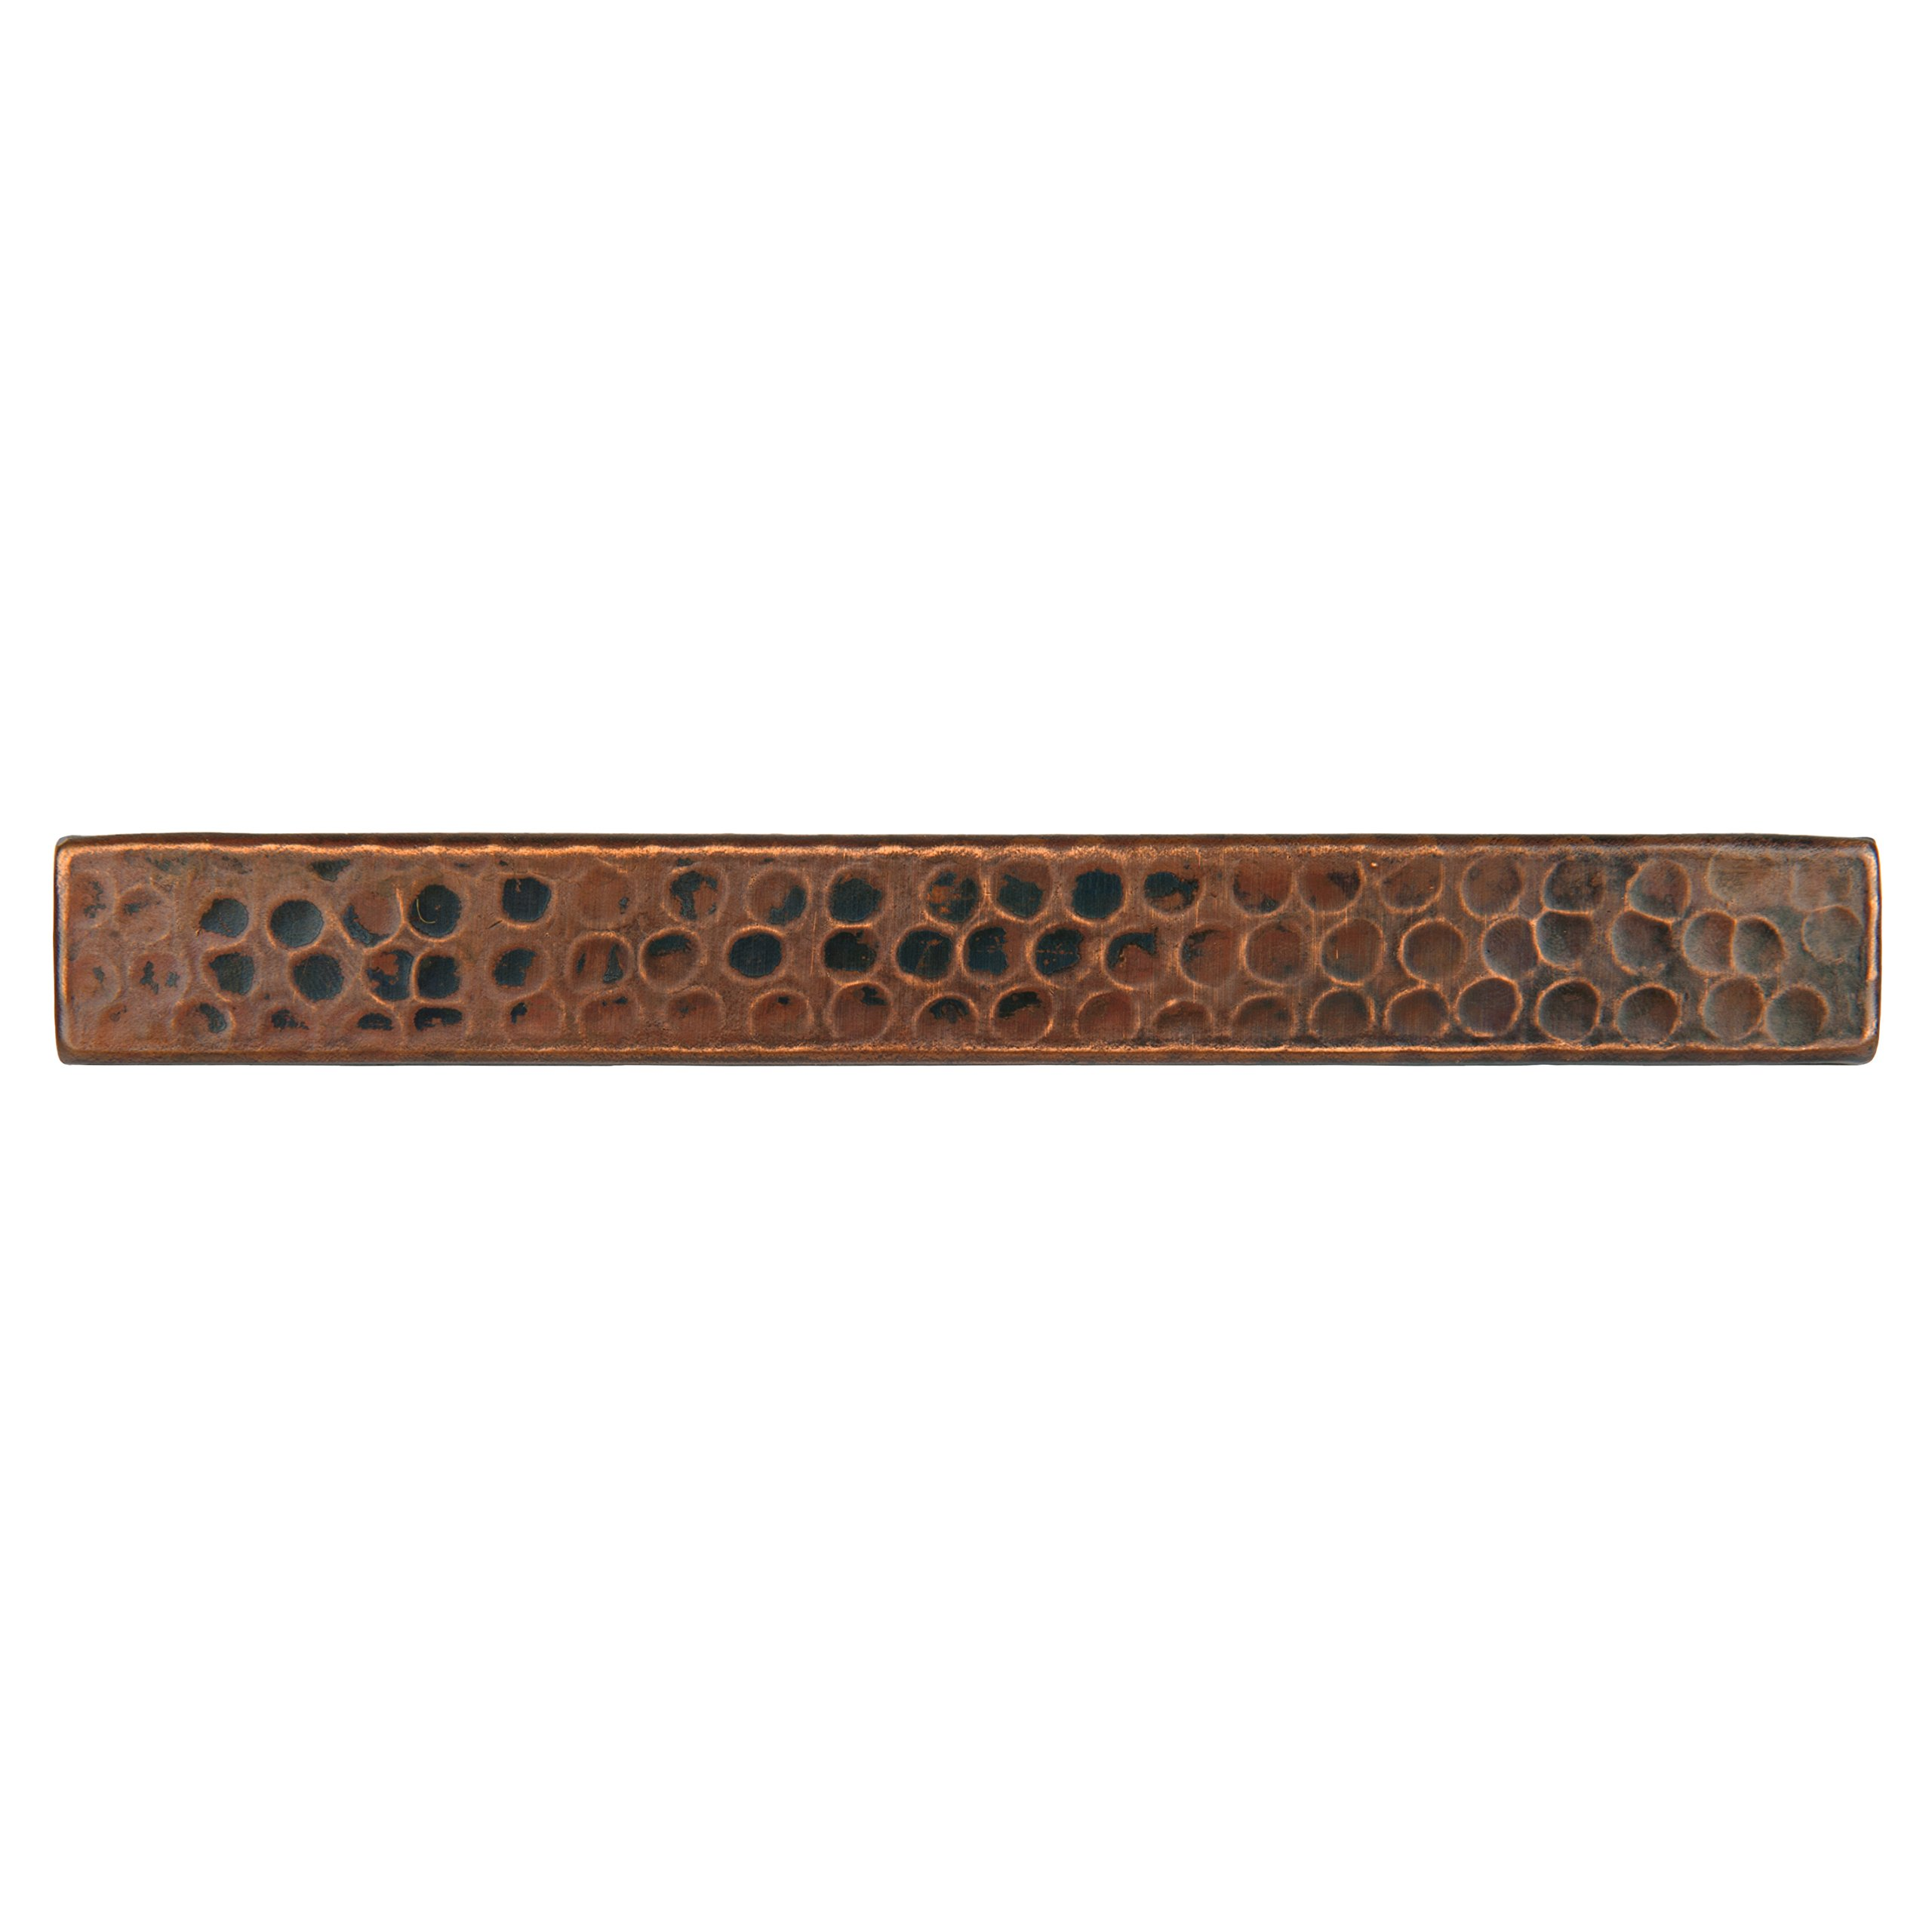 Premier Copper Products T18DBH_PKG4 1-Inch by 8-Inch Hammered Copper Tile - Quantity 4, Oil Rubbed Bronze